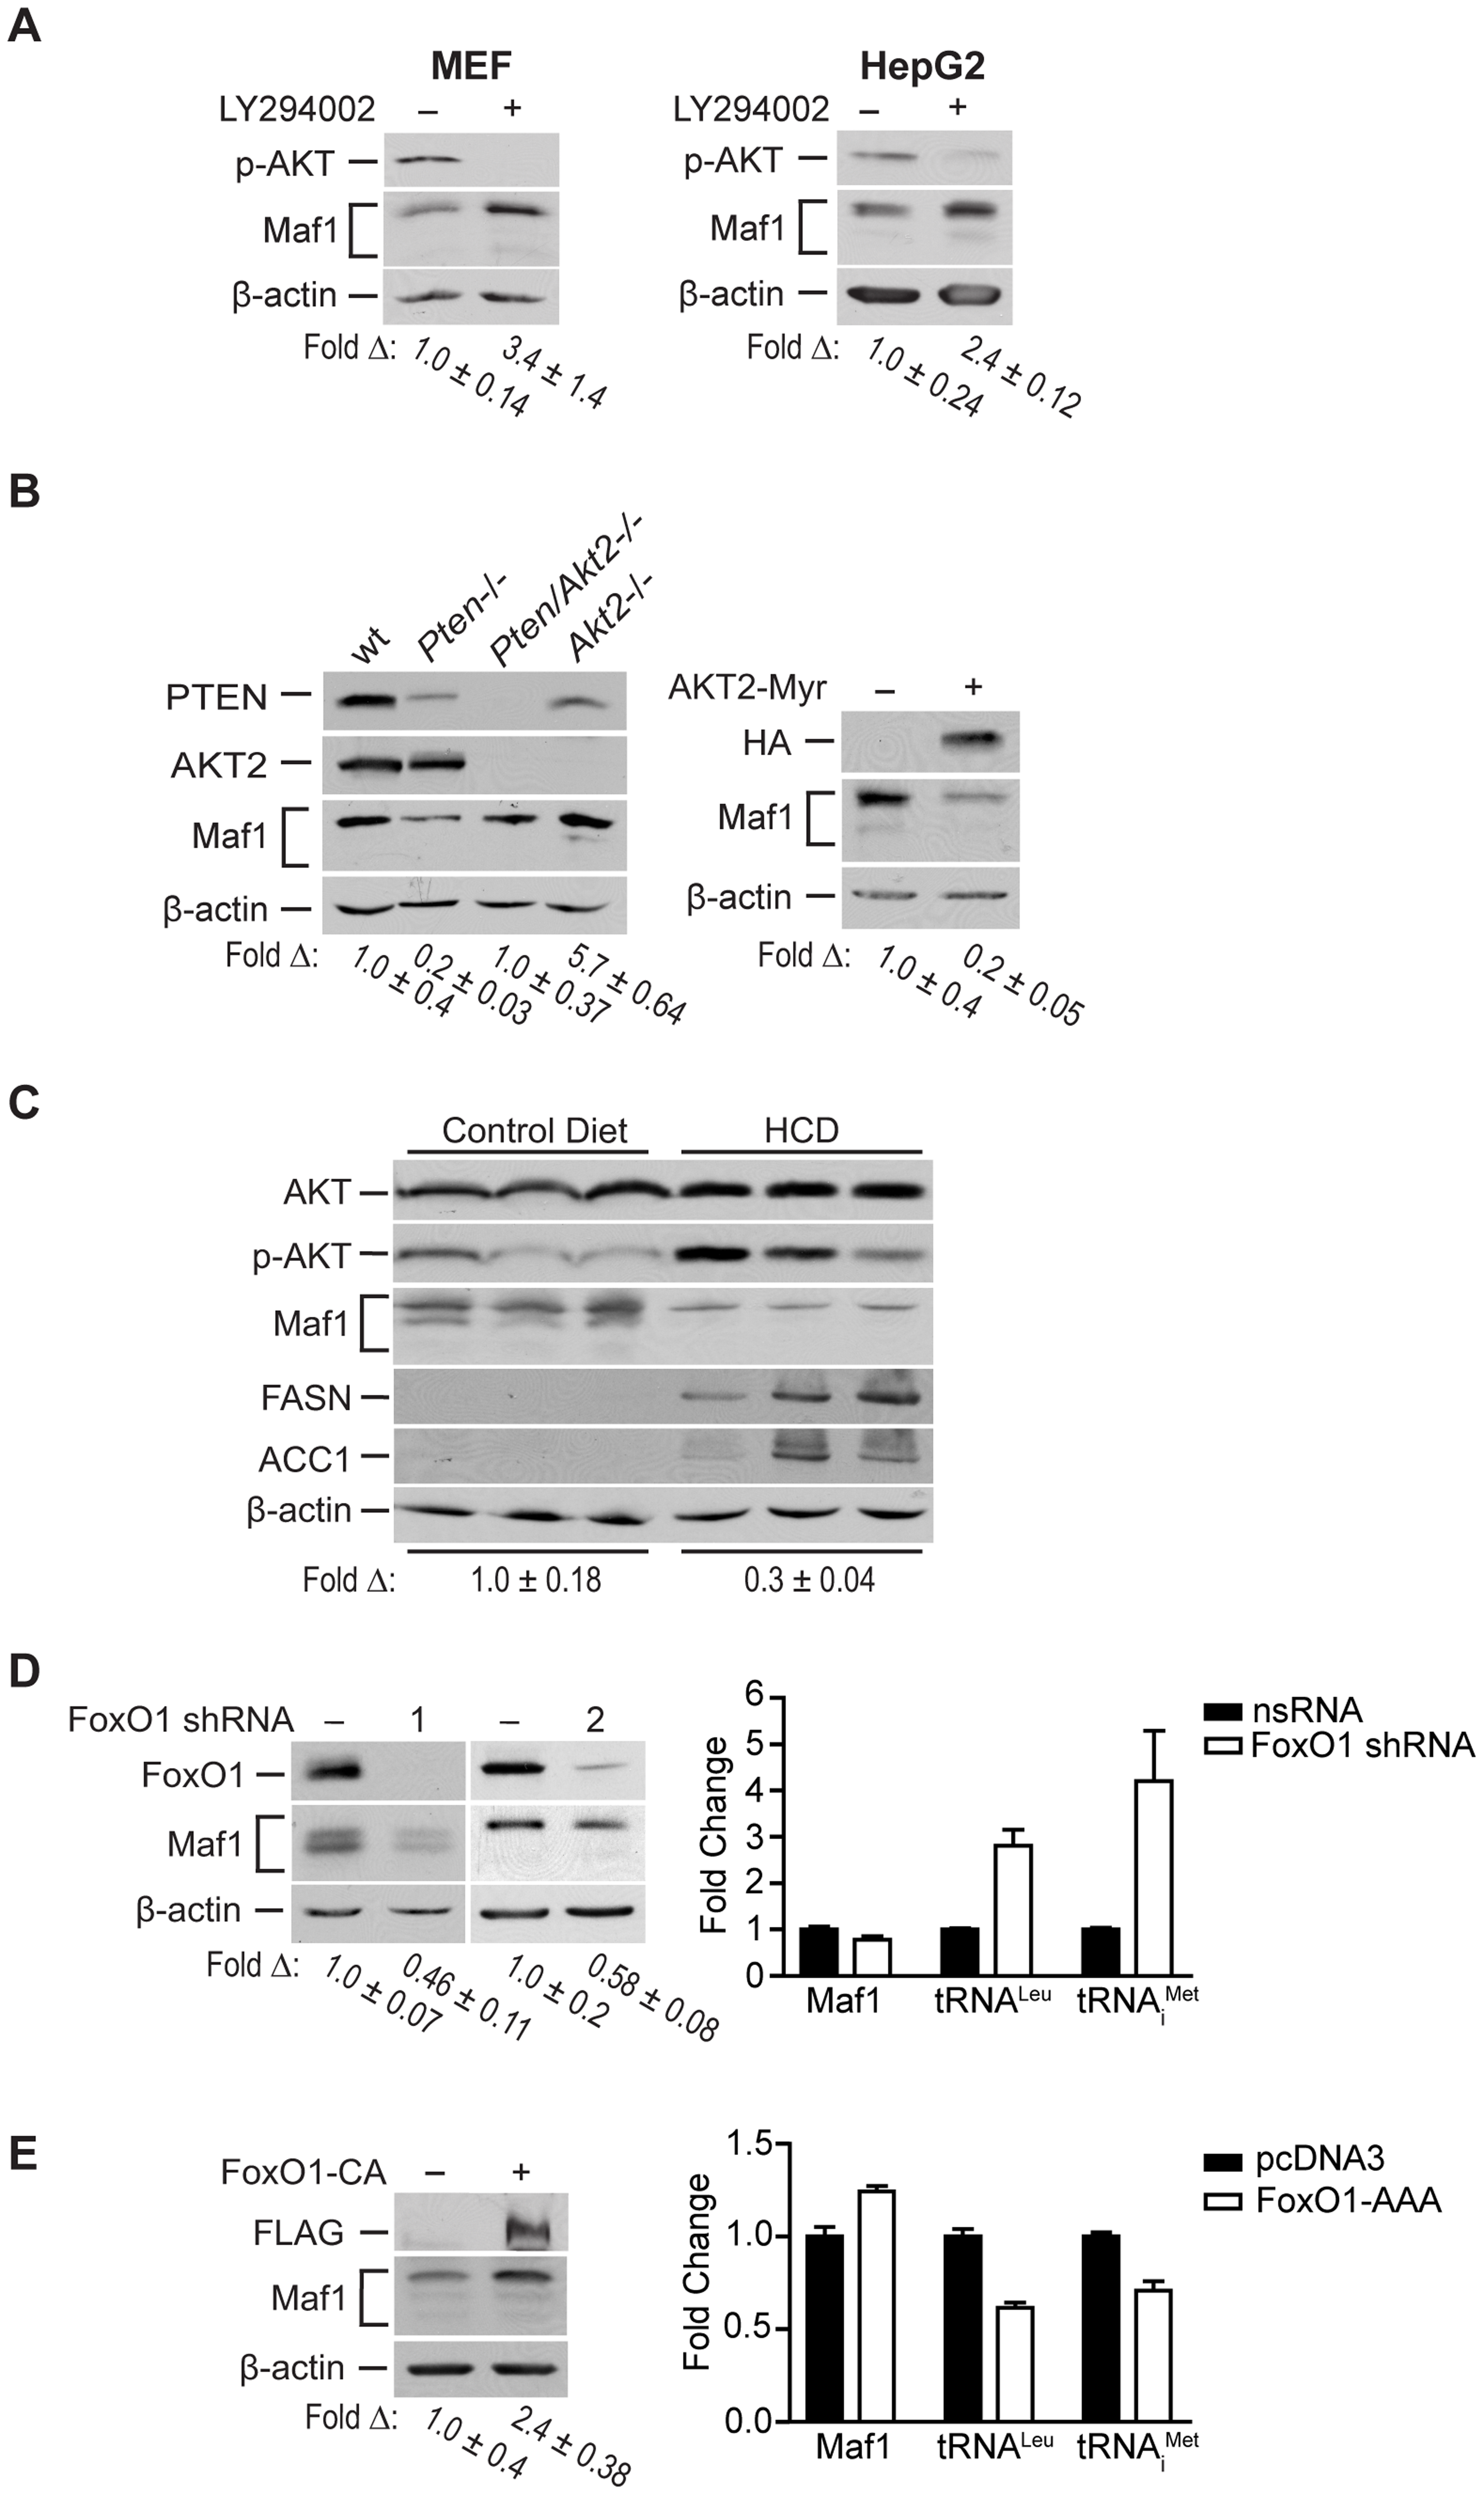 Maf1 is regulated through PI3K/AKT/FOXO1 signaling.